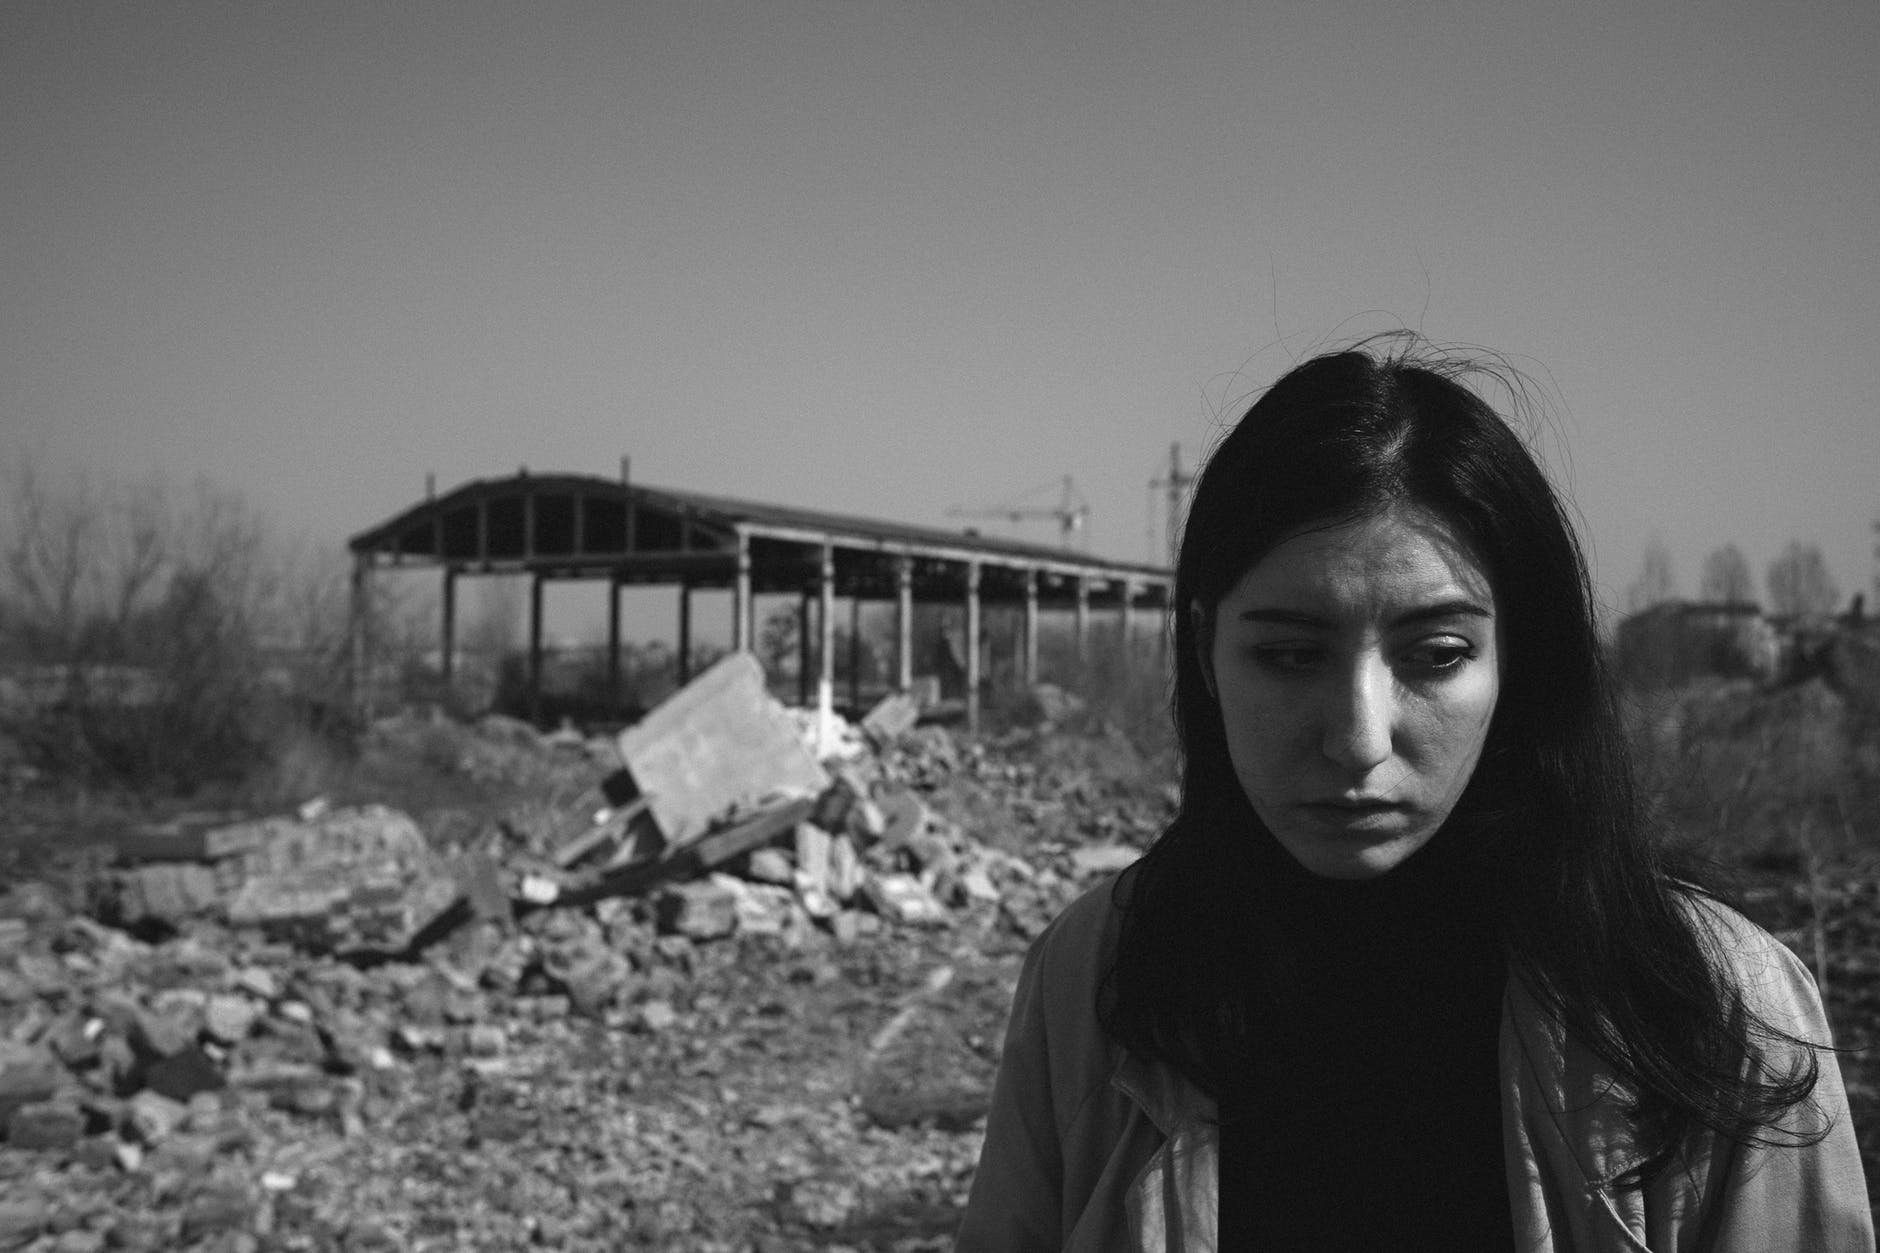 [Black & white image showing a girl standing, desperately, and behind her a destroyed building.] war